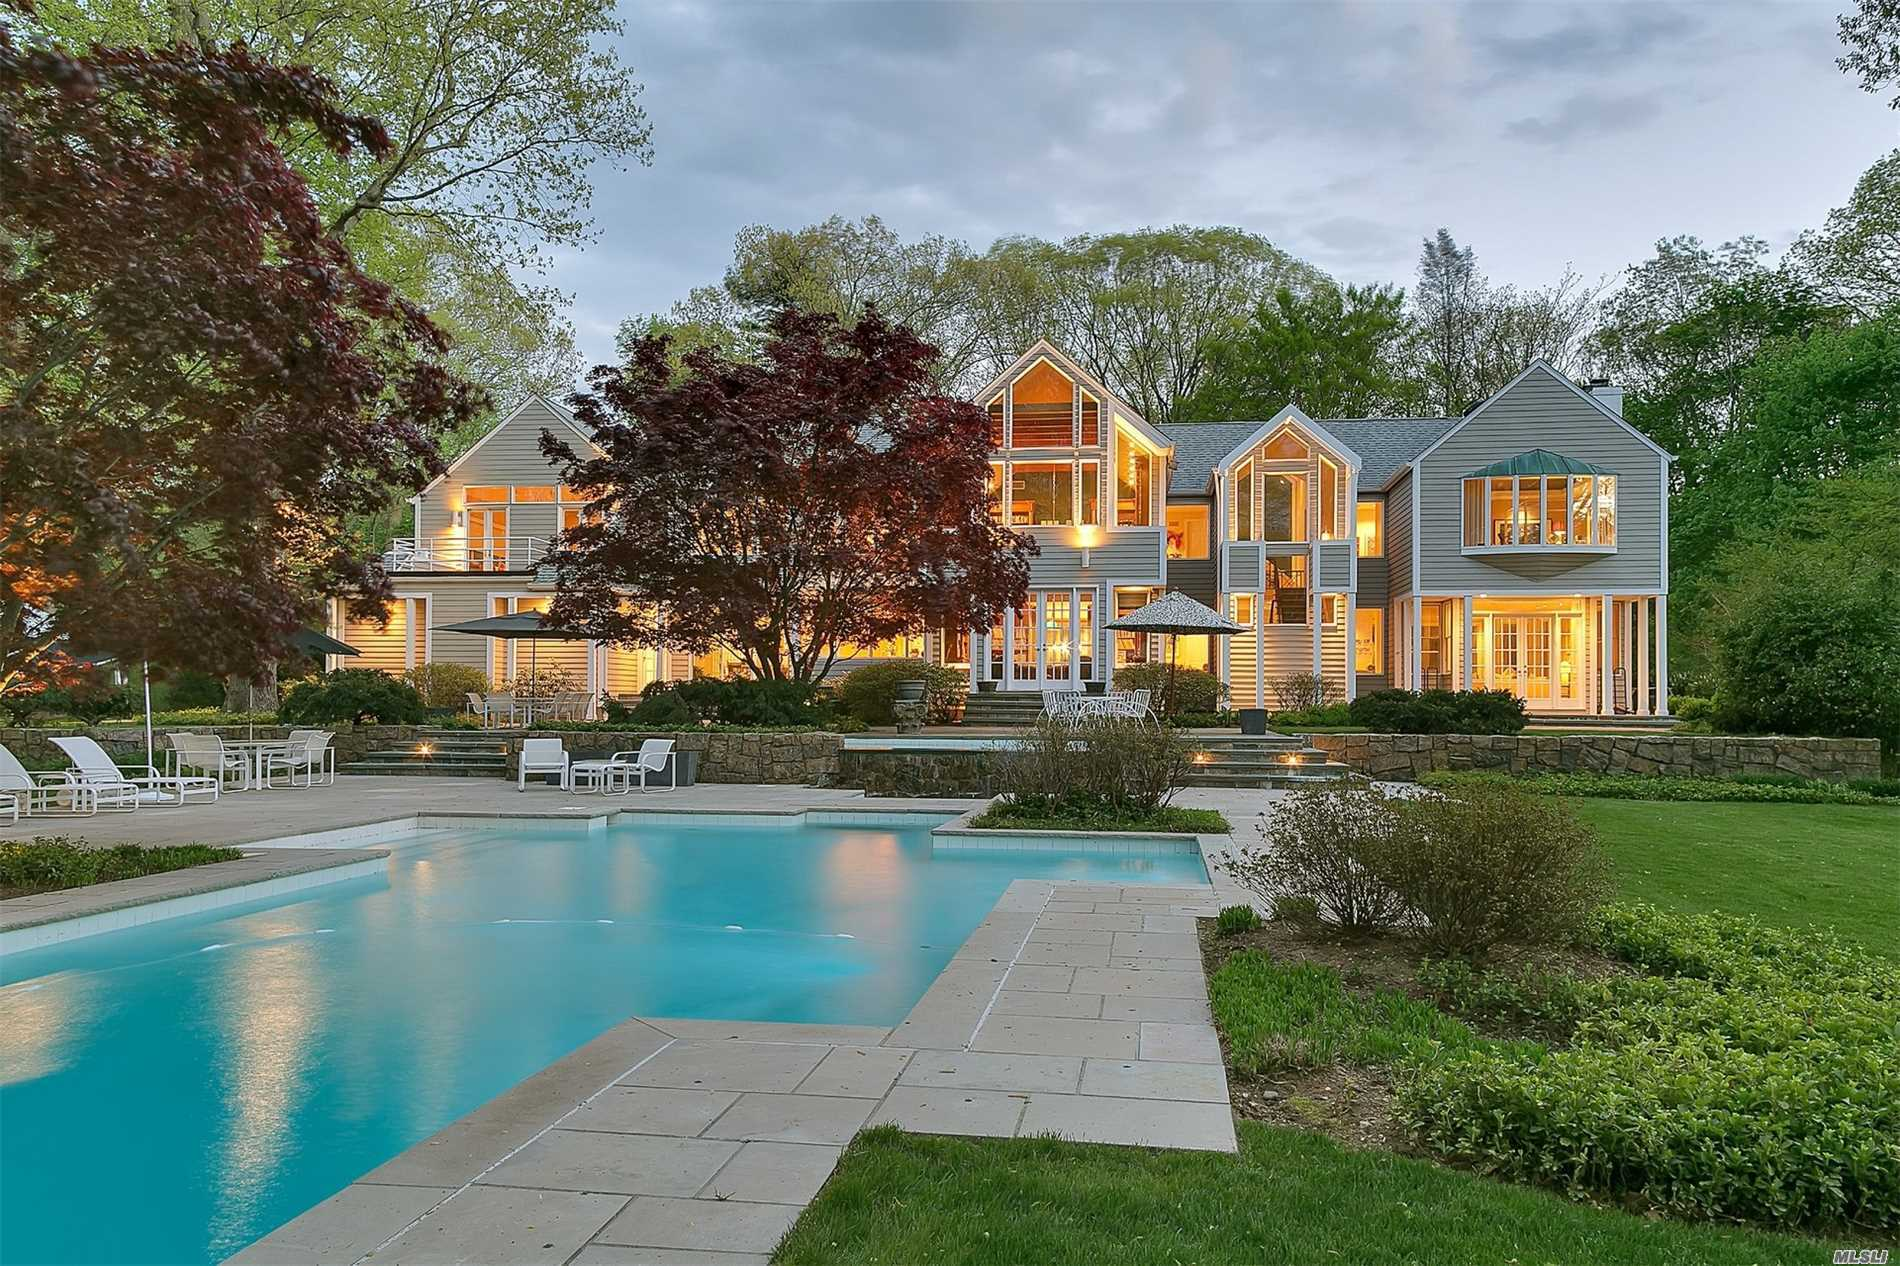 Dramatic Sun-Filled 6, 500 Sq.Ft. Contemporary With Long And Private Drive. Award Winning 11 Room, 5 Bedroom, 4.5 Bath Home With High Ceilings, Floor To Ceiling Windows, A Second Story Library, Custom Built-Ins Situated On 5 Pristine Acres Complete With A Four Car Garage, Pond, Dock, Pool And Waterfall.